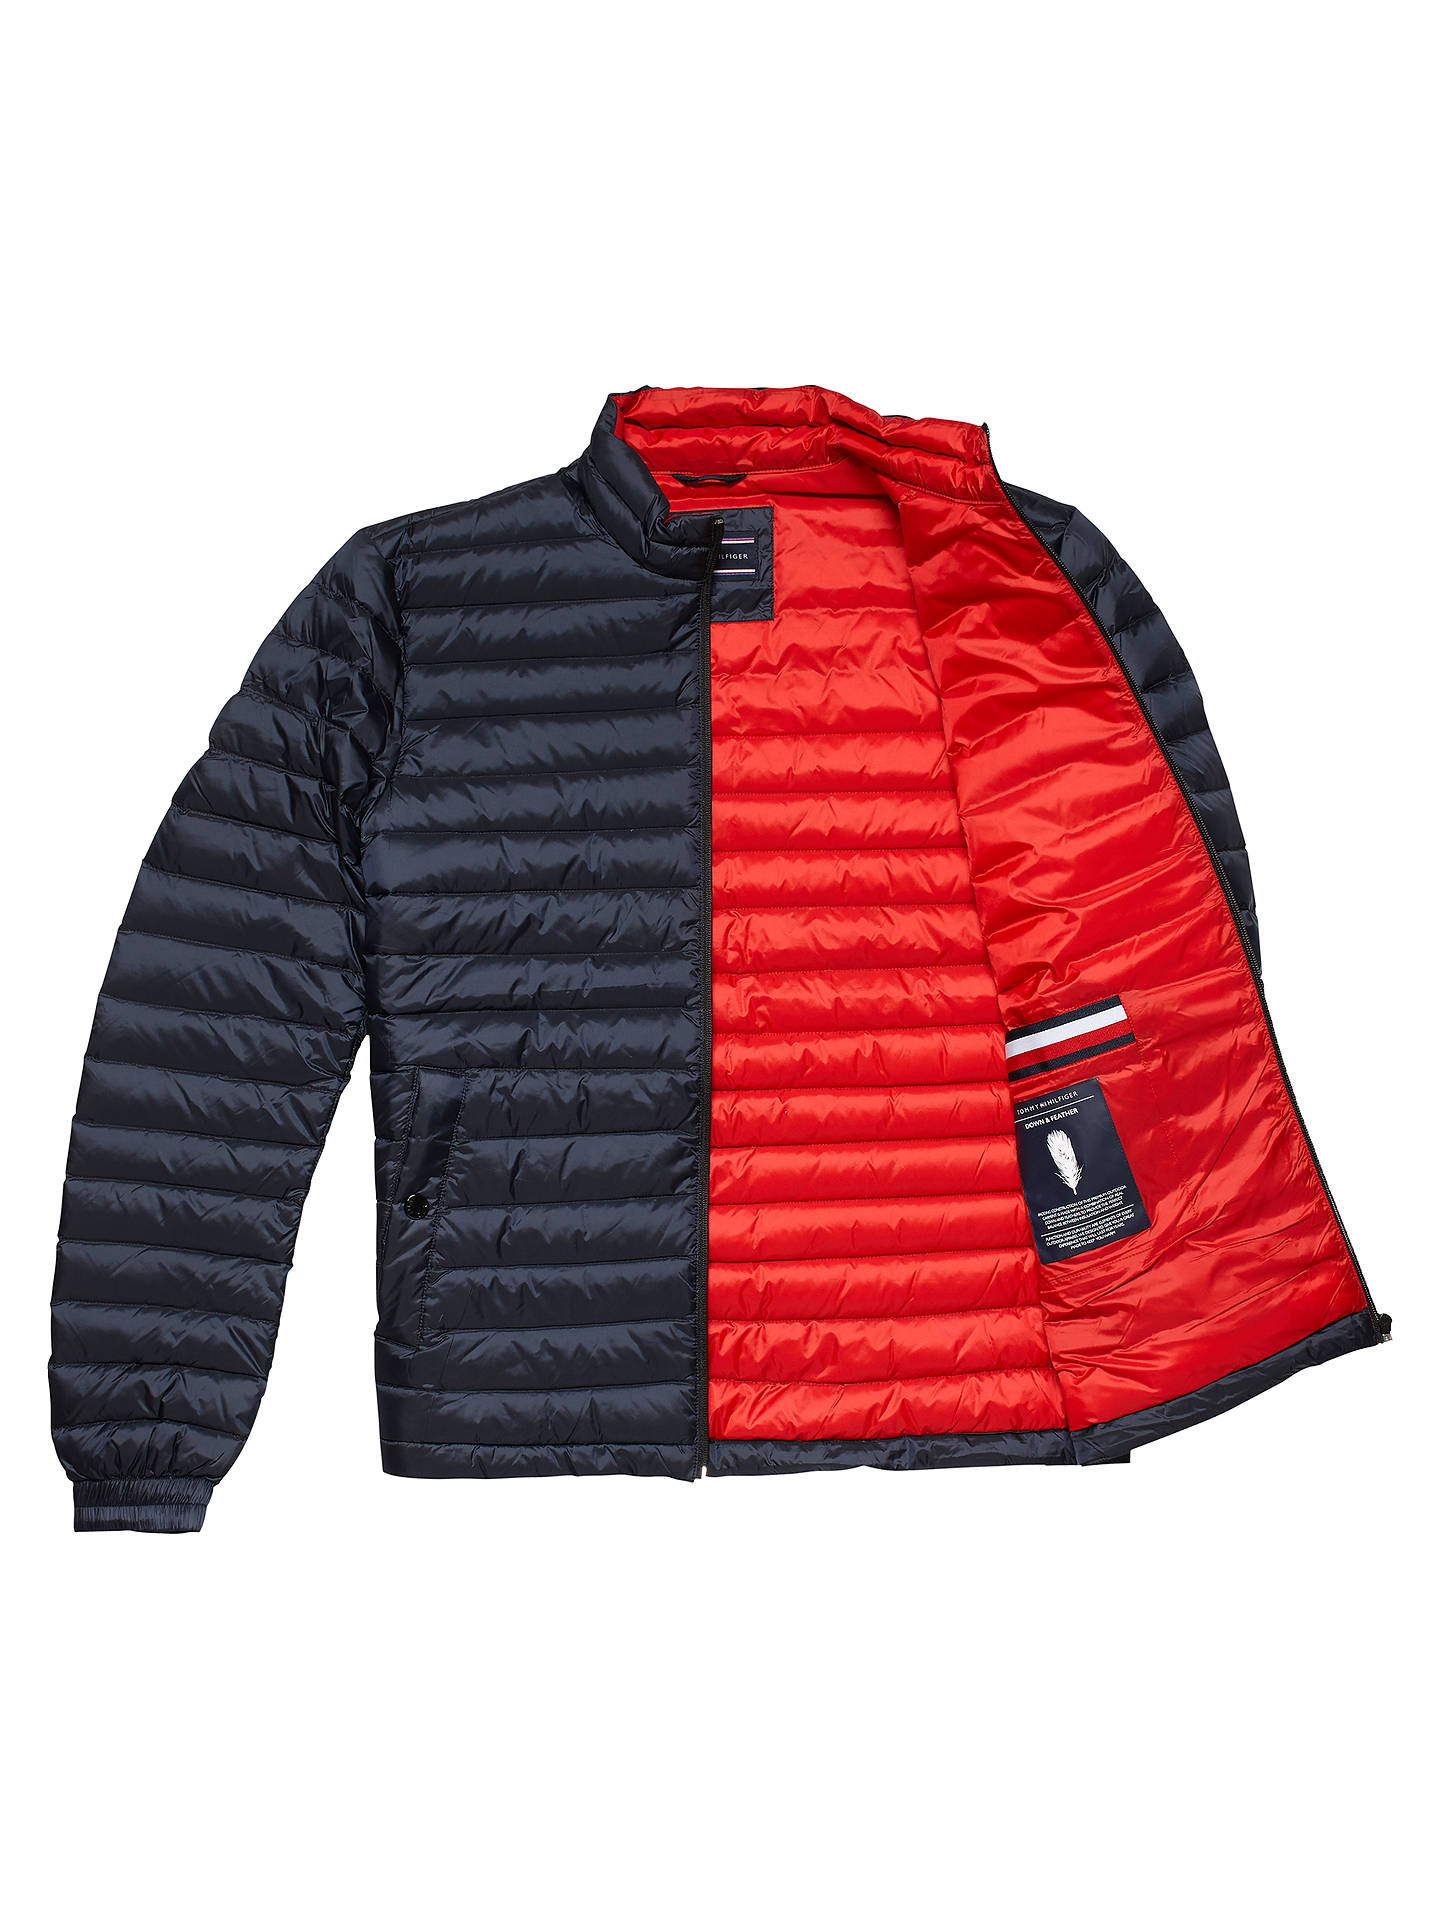 Tommy Hilfiger Men/'s Lightweight Down Quilted Packable Jacket XL